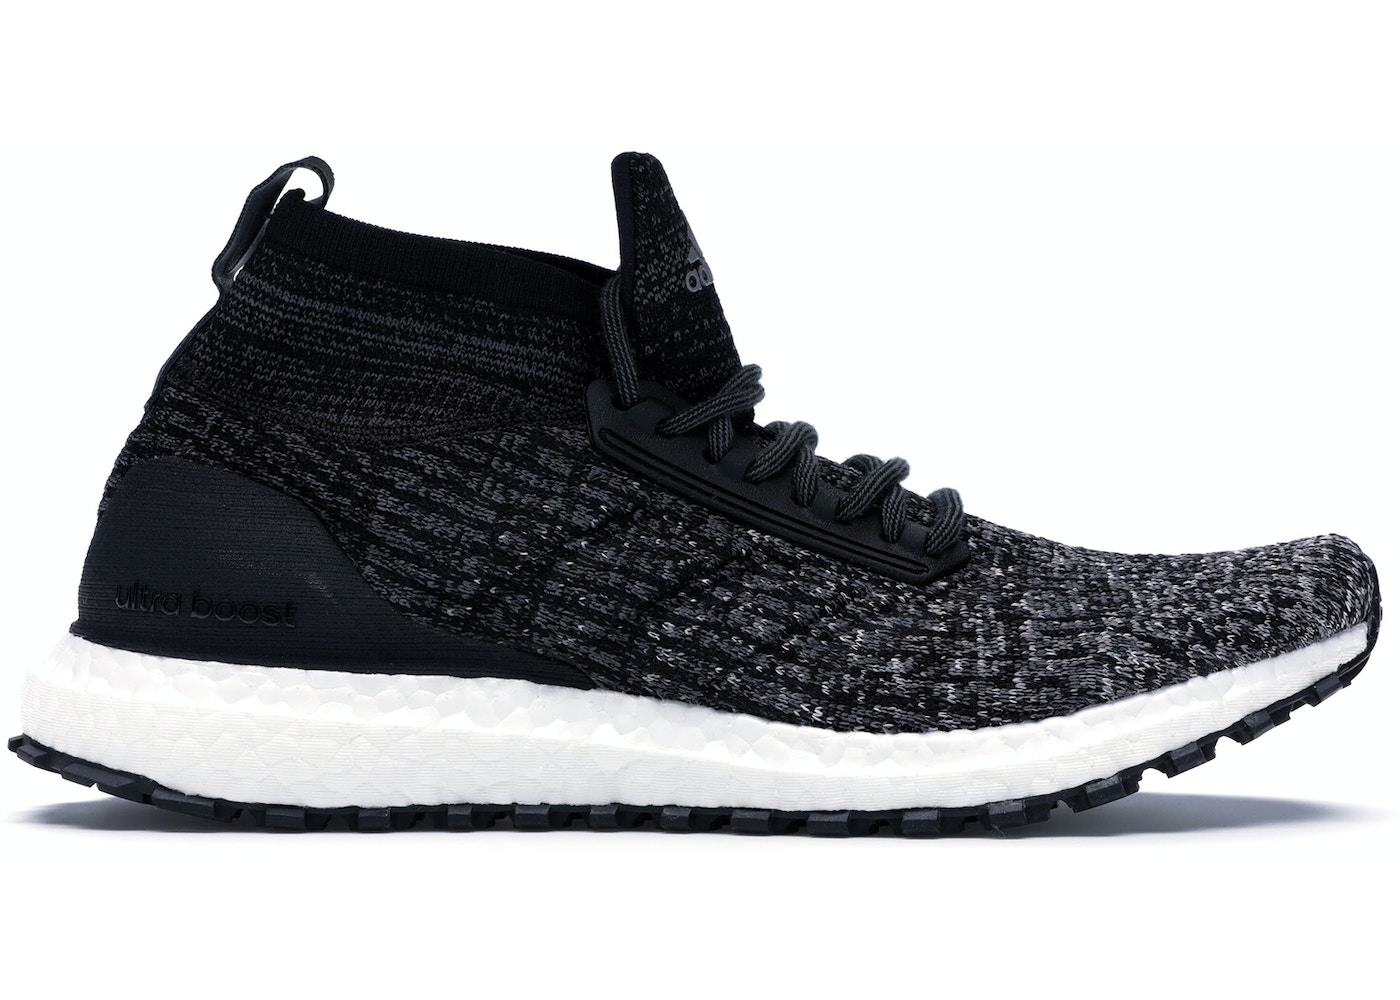 new arrivals 4343a afae0 adidas Ultraboost ATR Reigning Champ Core Black